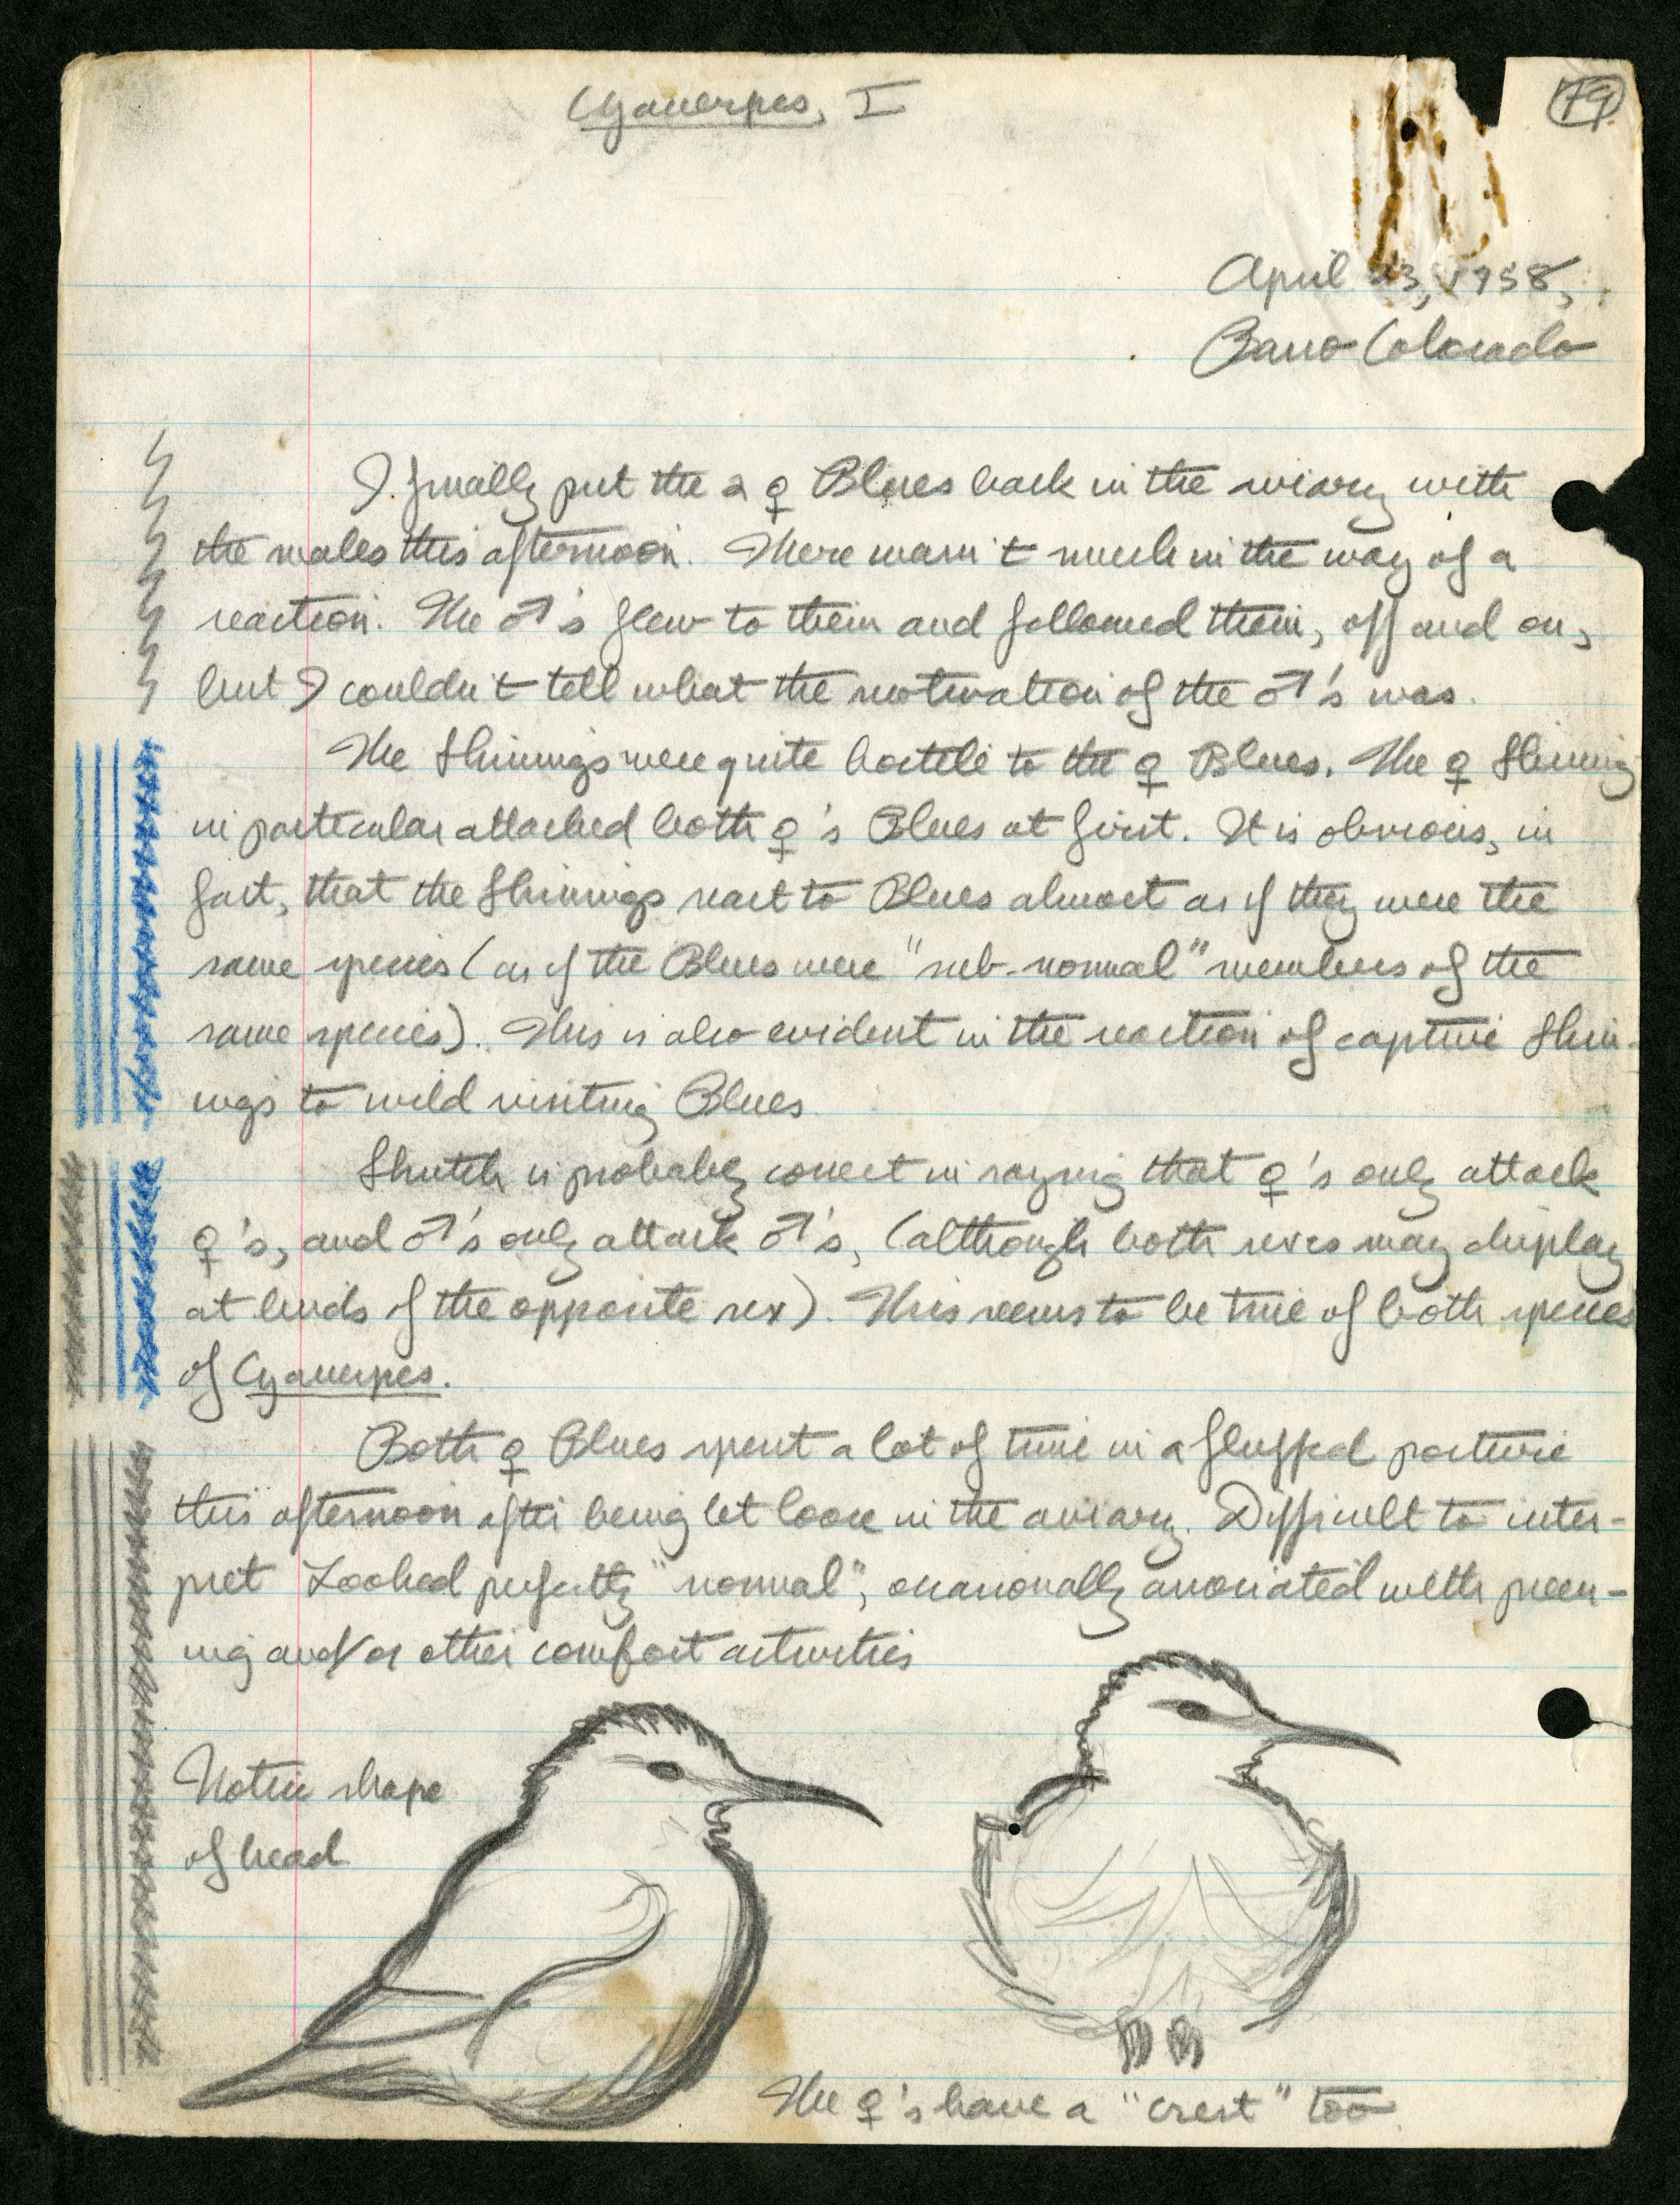 filemartin h moynihans field notes on cyanerpes panama